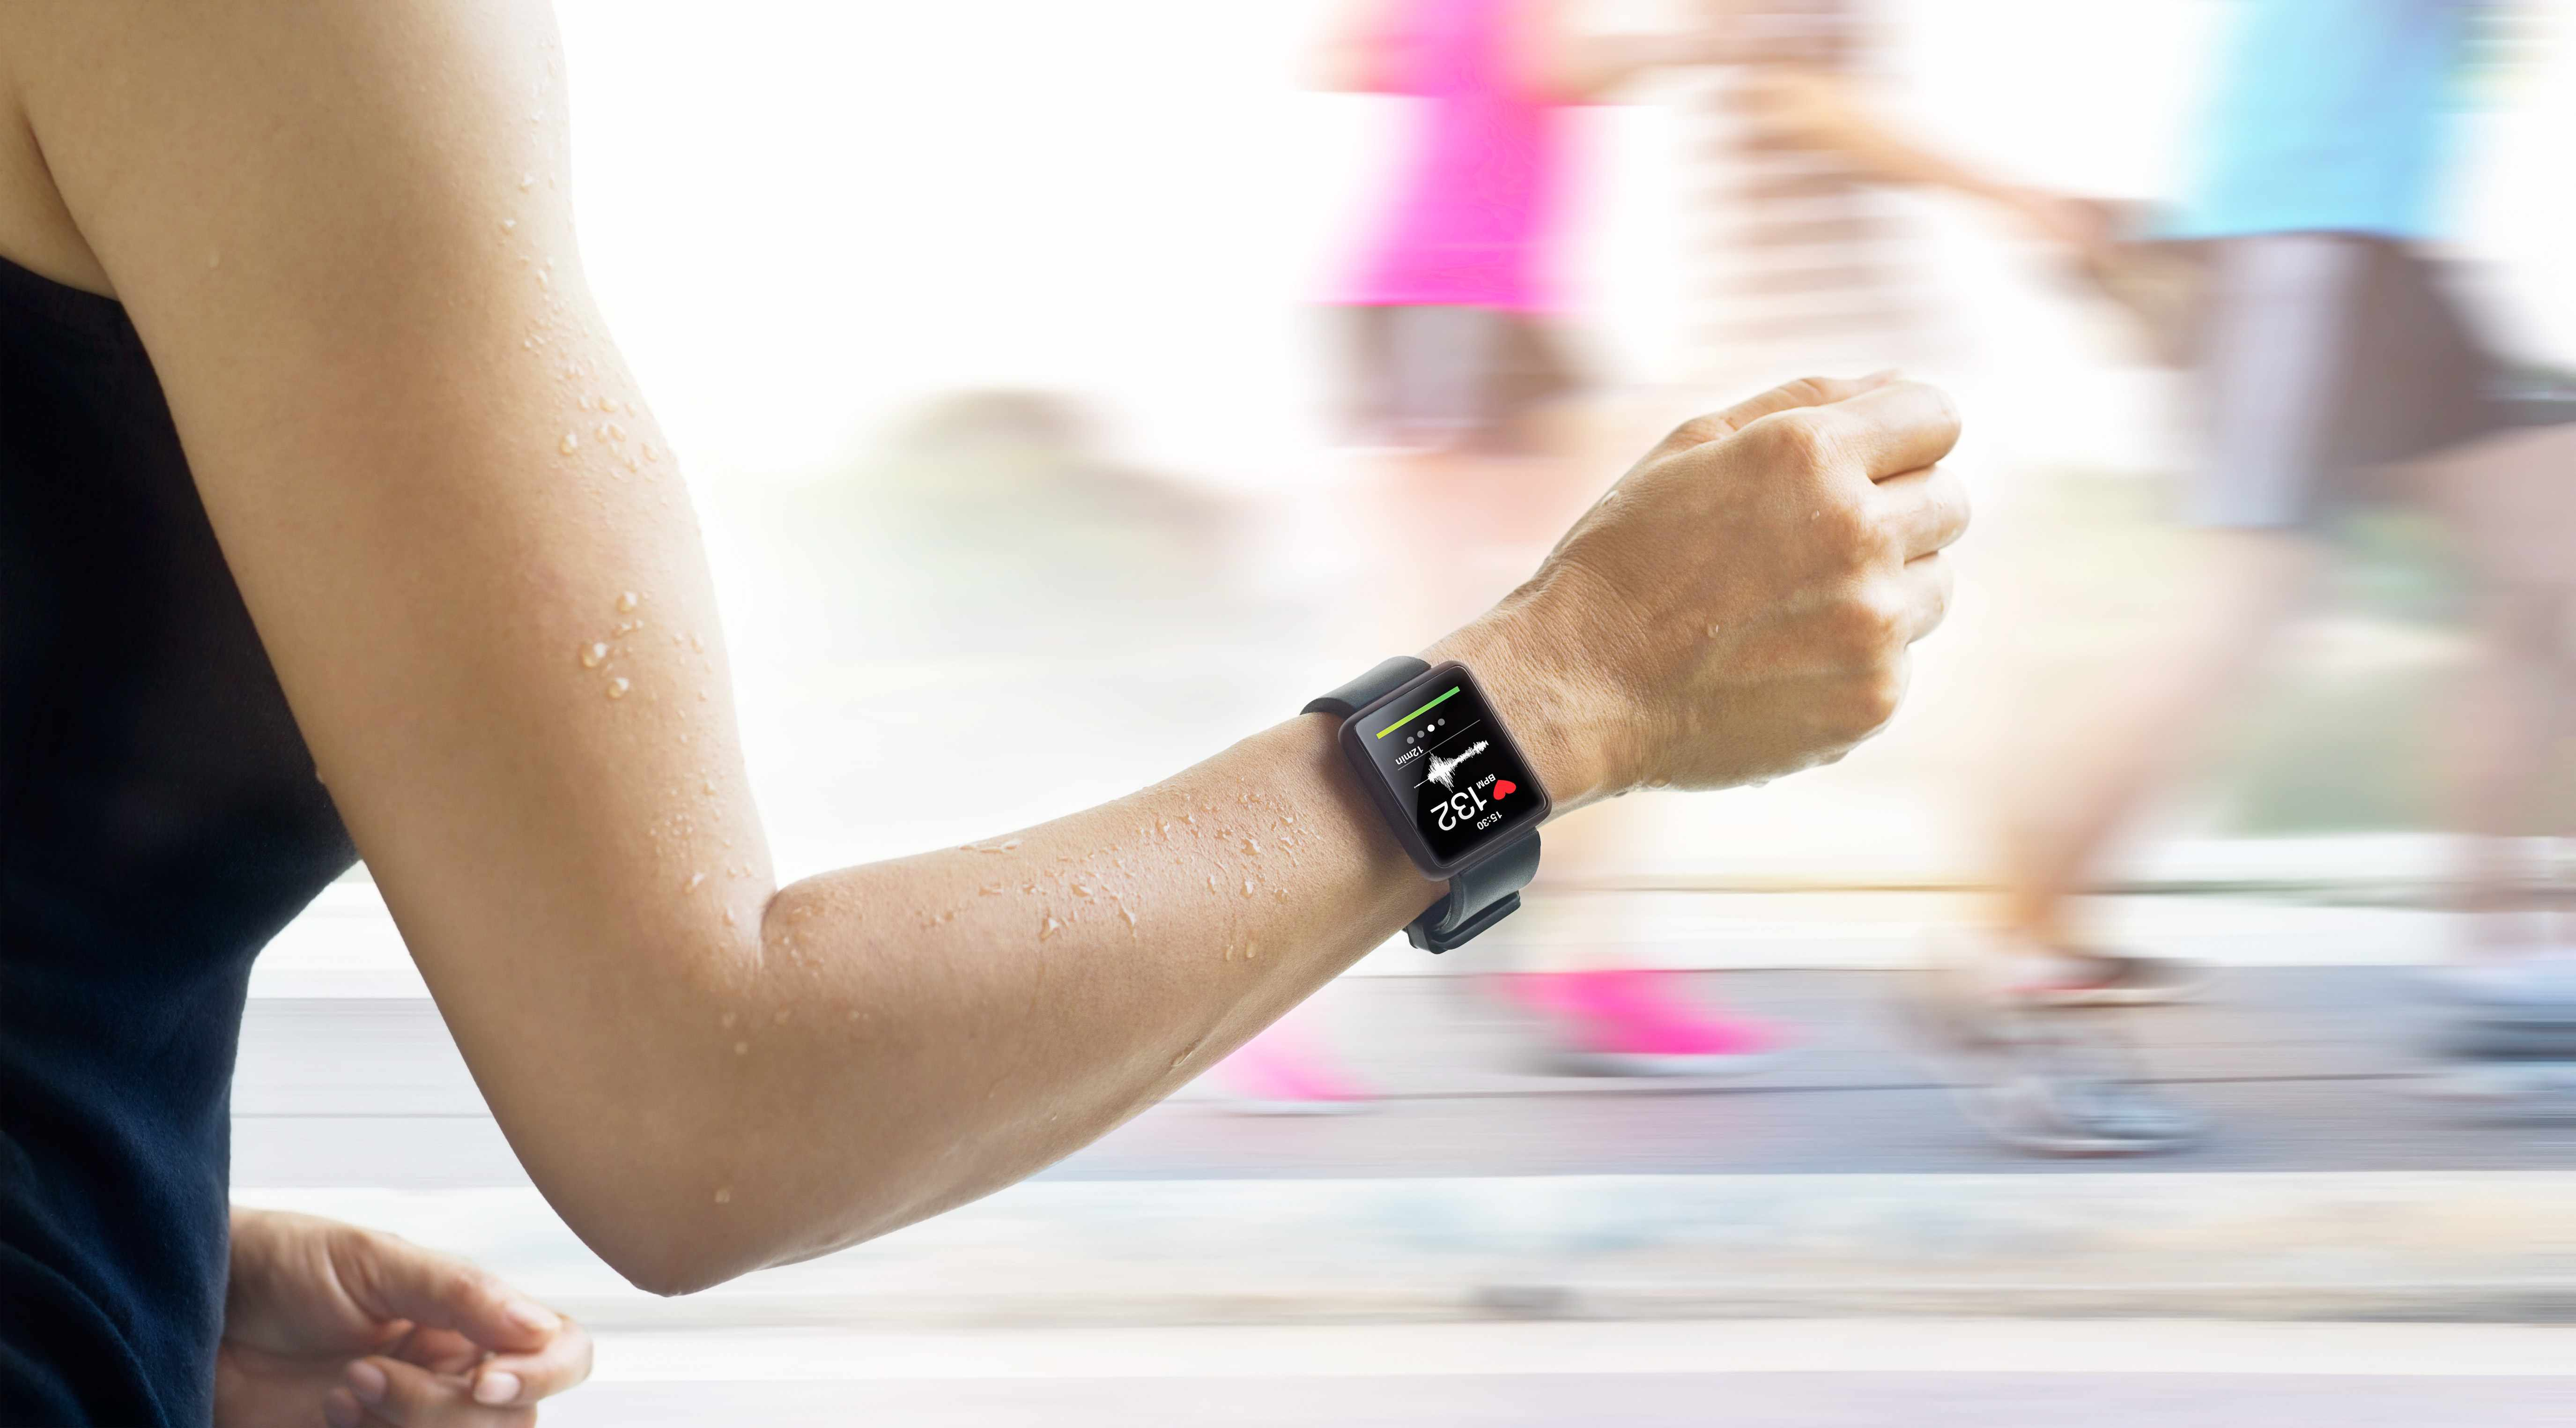 a woman running with an exercise monitor on her arm